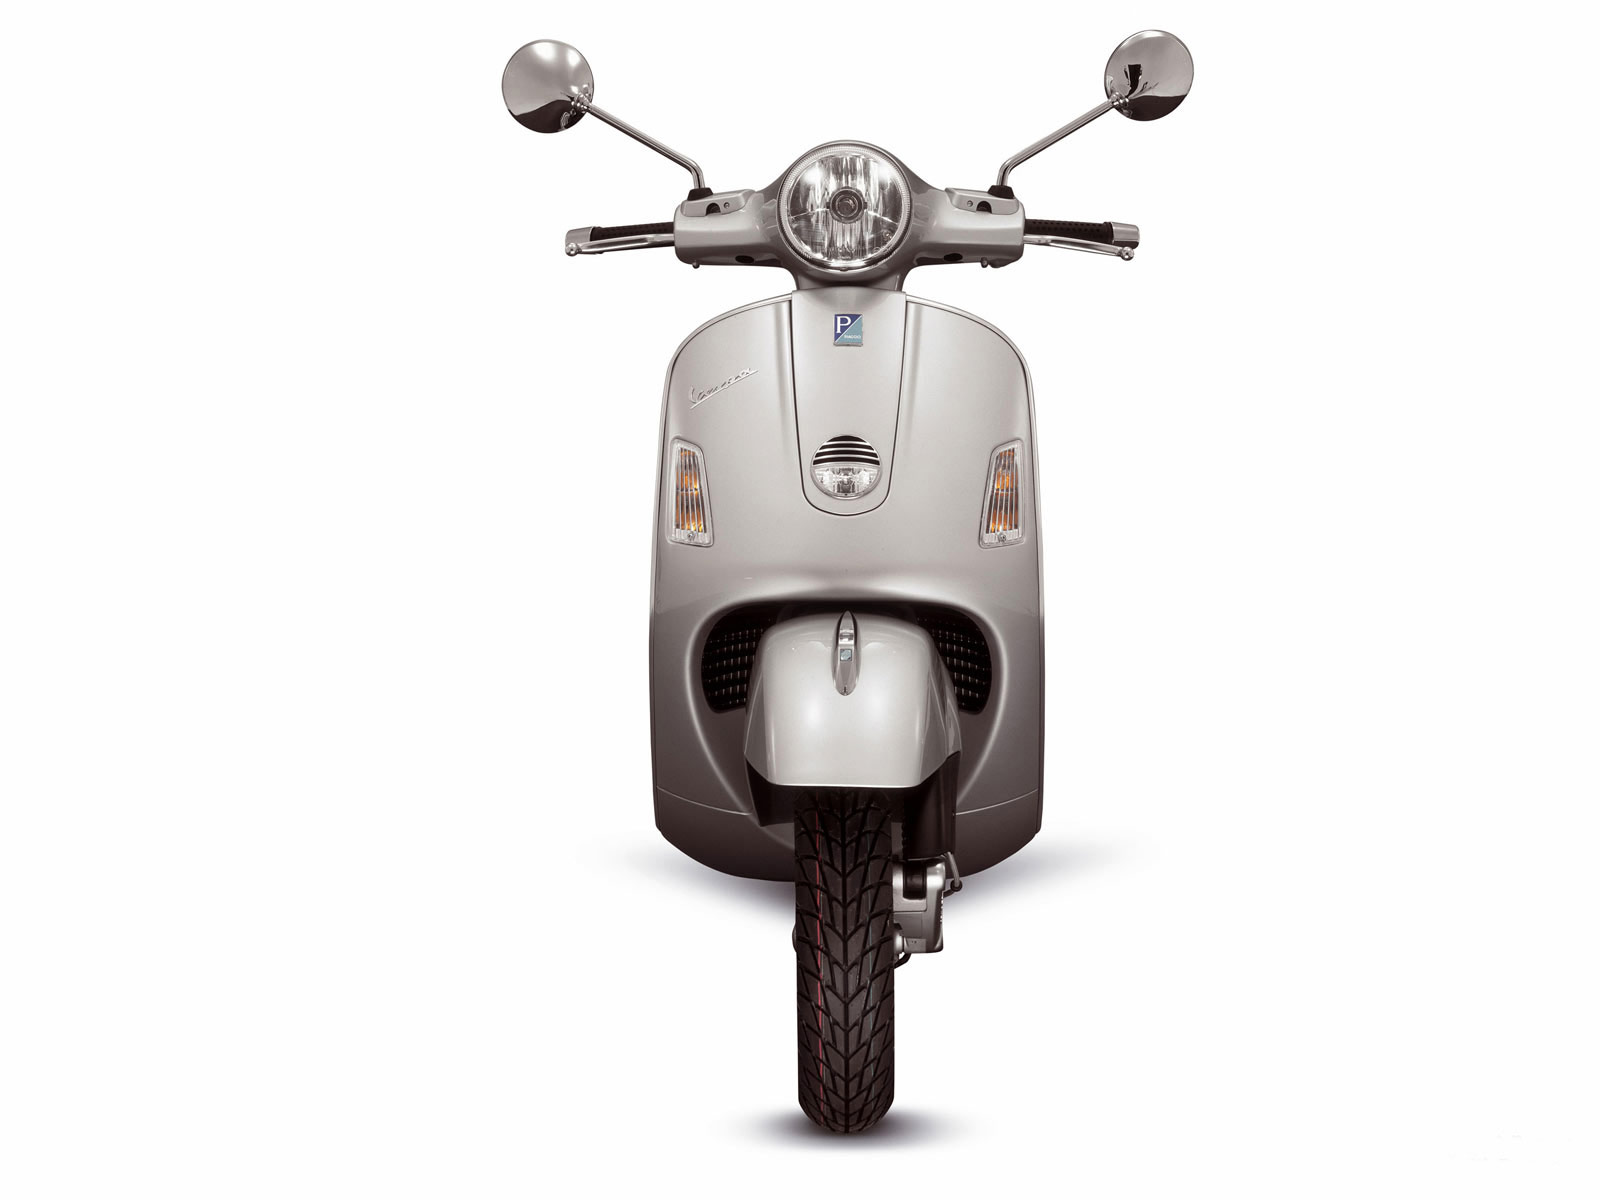 Honda Dealers Ri >> 2006 VESPA GTS 250 IE accident lawyers info, scooter pictures